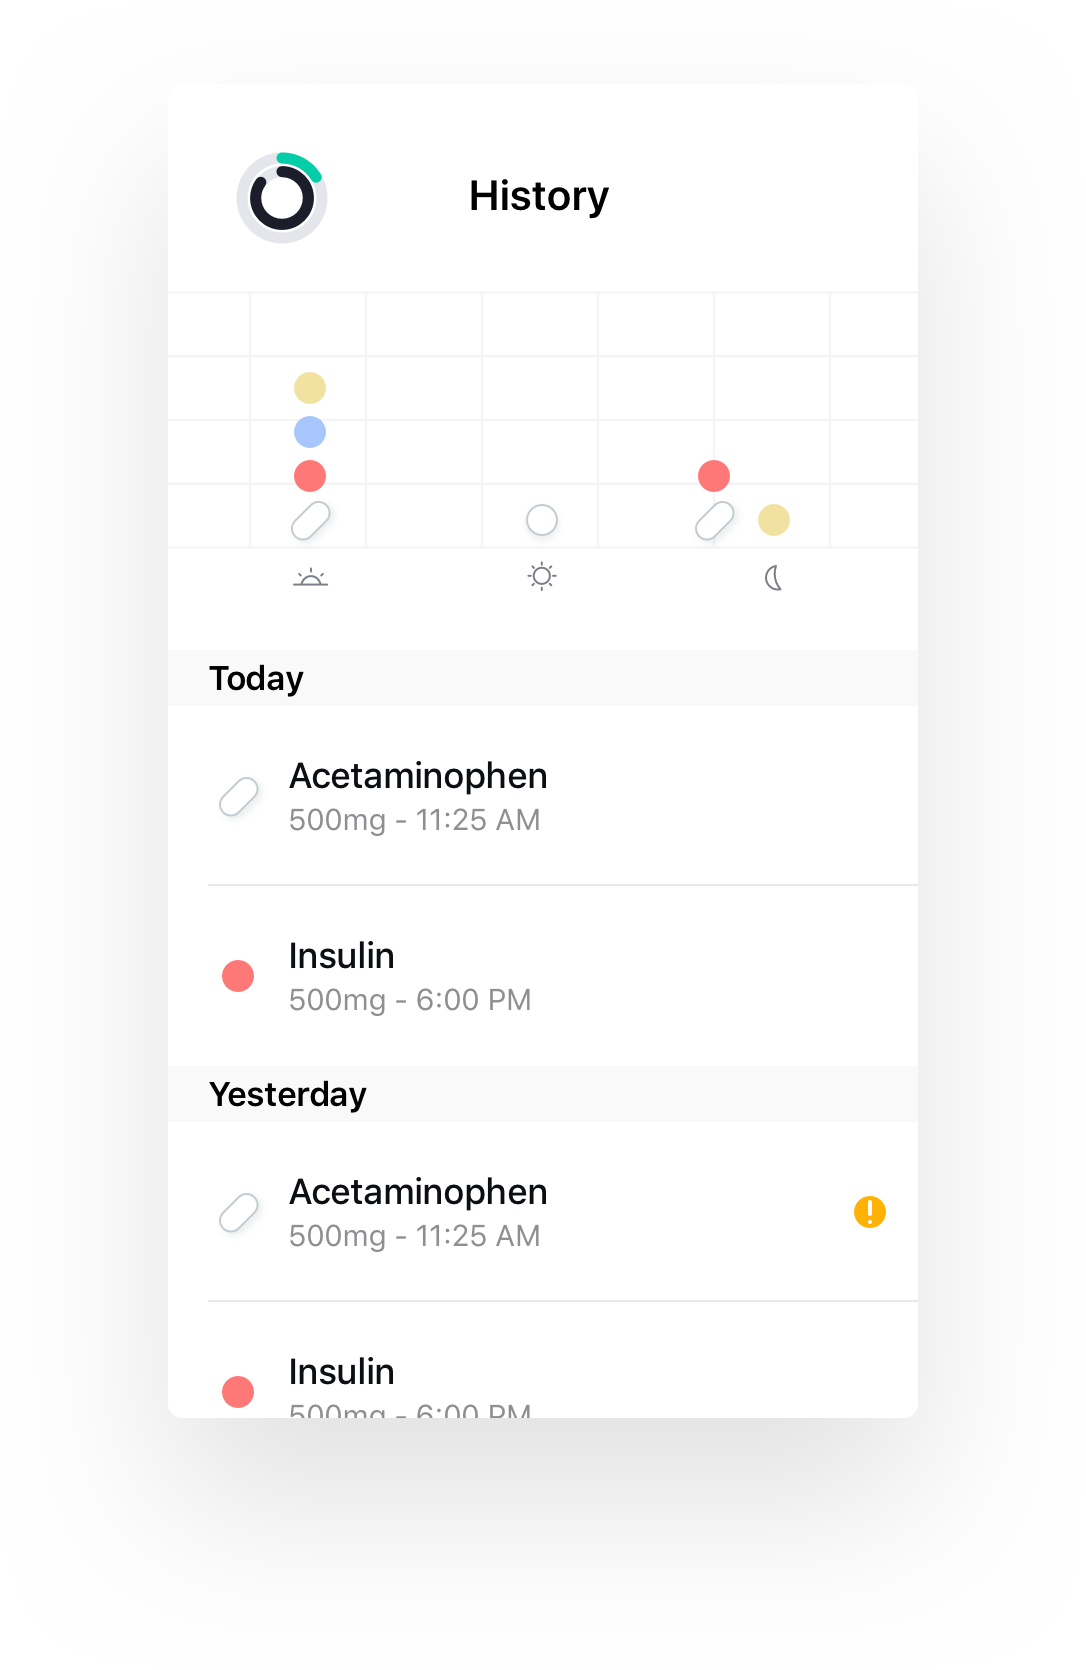 Your medication history, spelled out - Mineral continues the tradition of the 'digital pillbox' - mapping prescription plans with a visual interface.Missed medications can be tracked and reviewed, and physicians can provide medication context as needed.